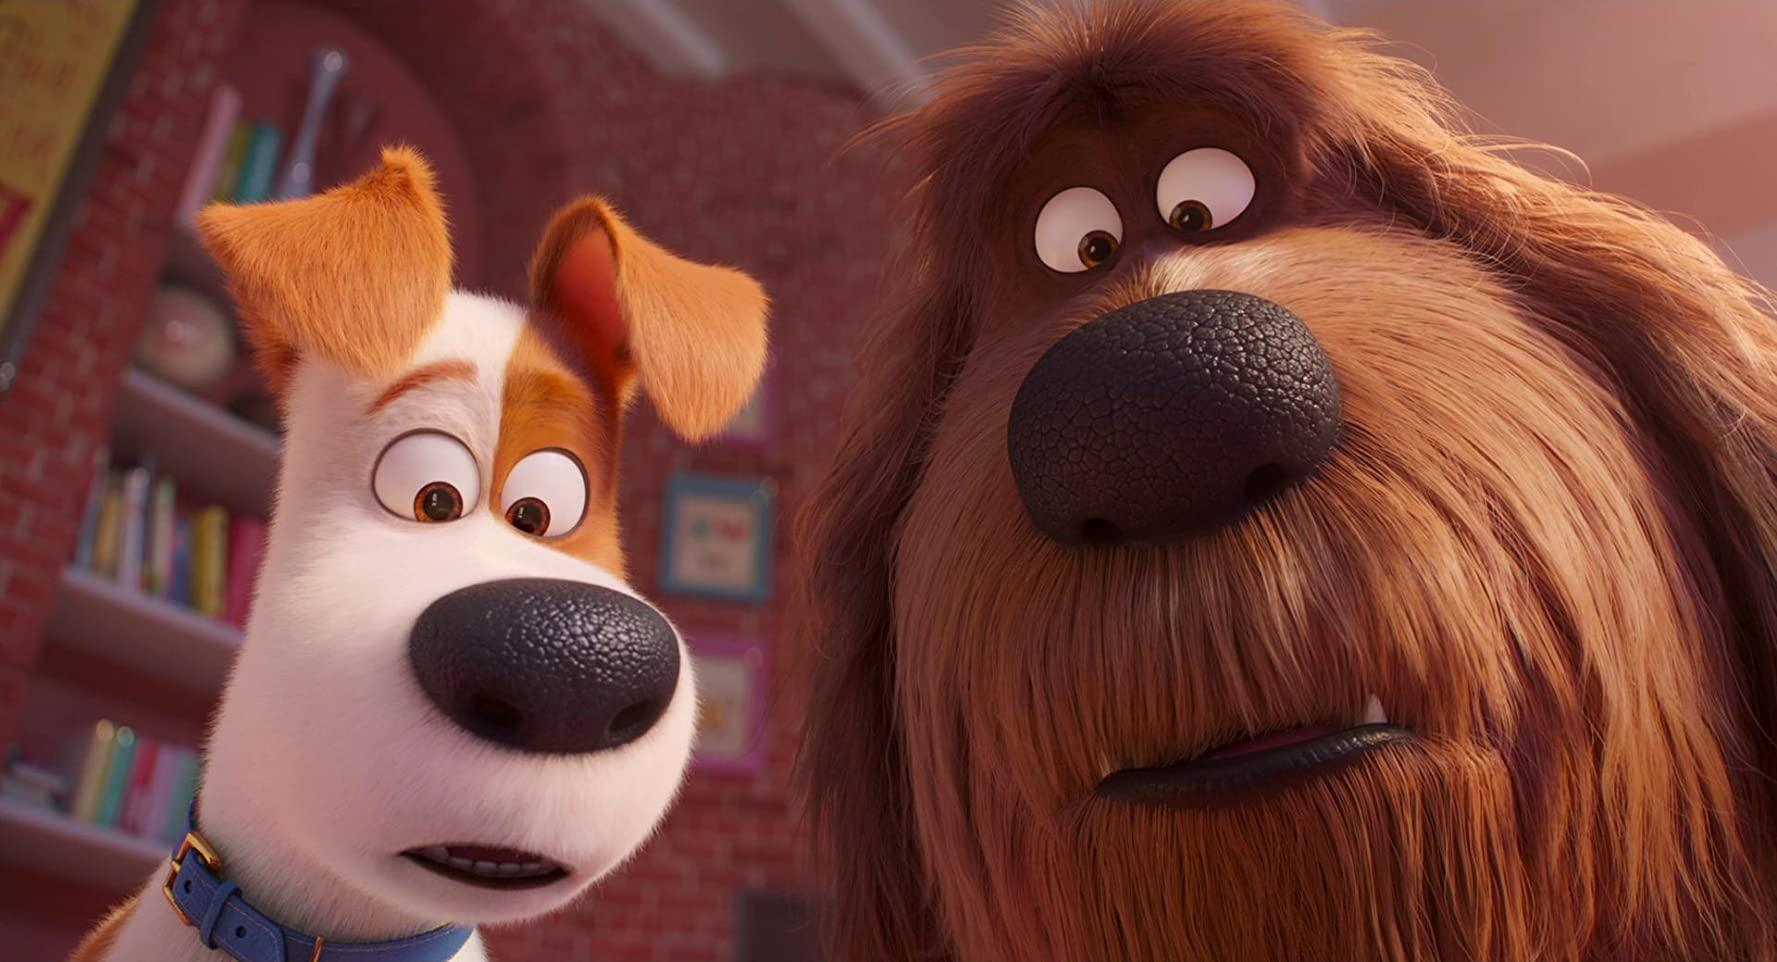 مشاهدة فيلم The Secret Life of Pets 2 (2019) مترجم HD اون لاين